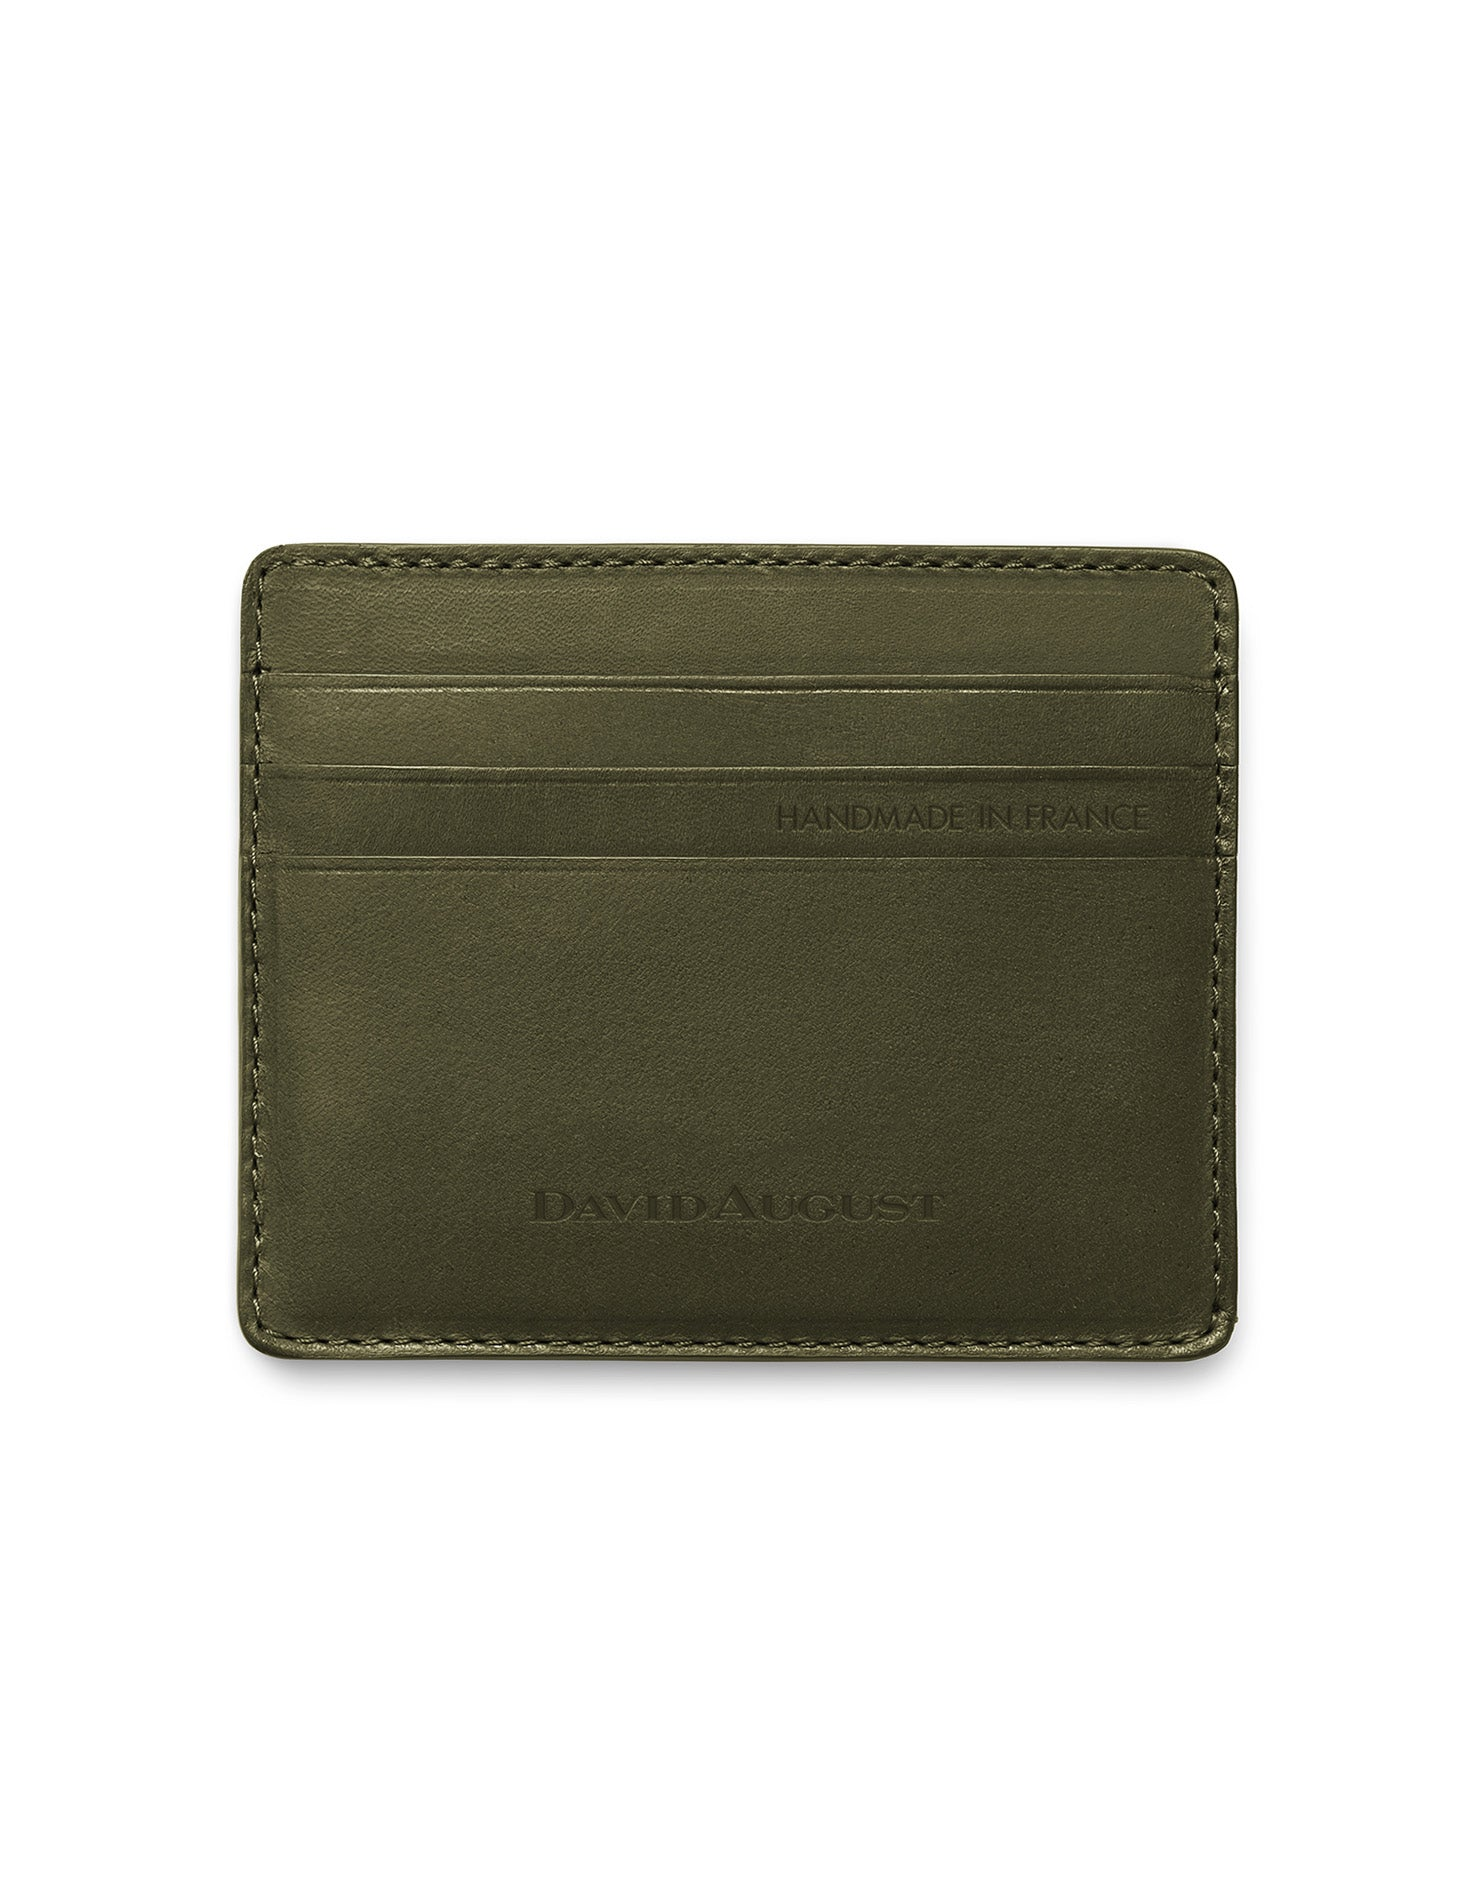 David August Luxury Genuine Vintage Calfskin Leather Card Case in Olive Green